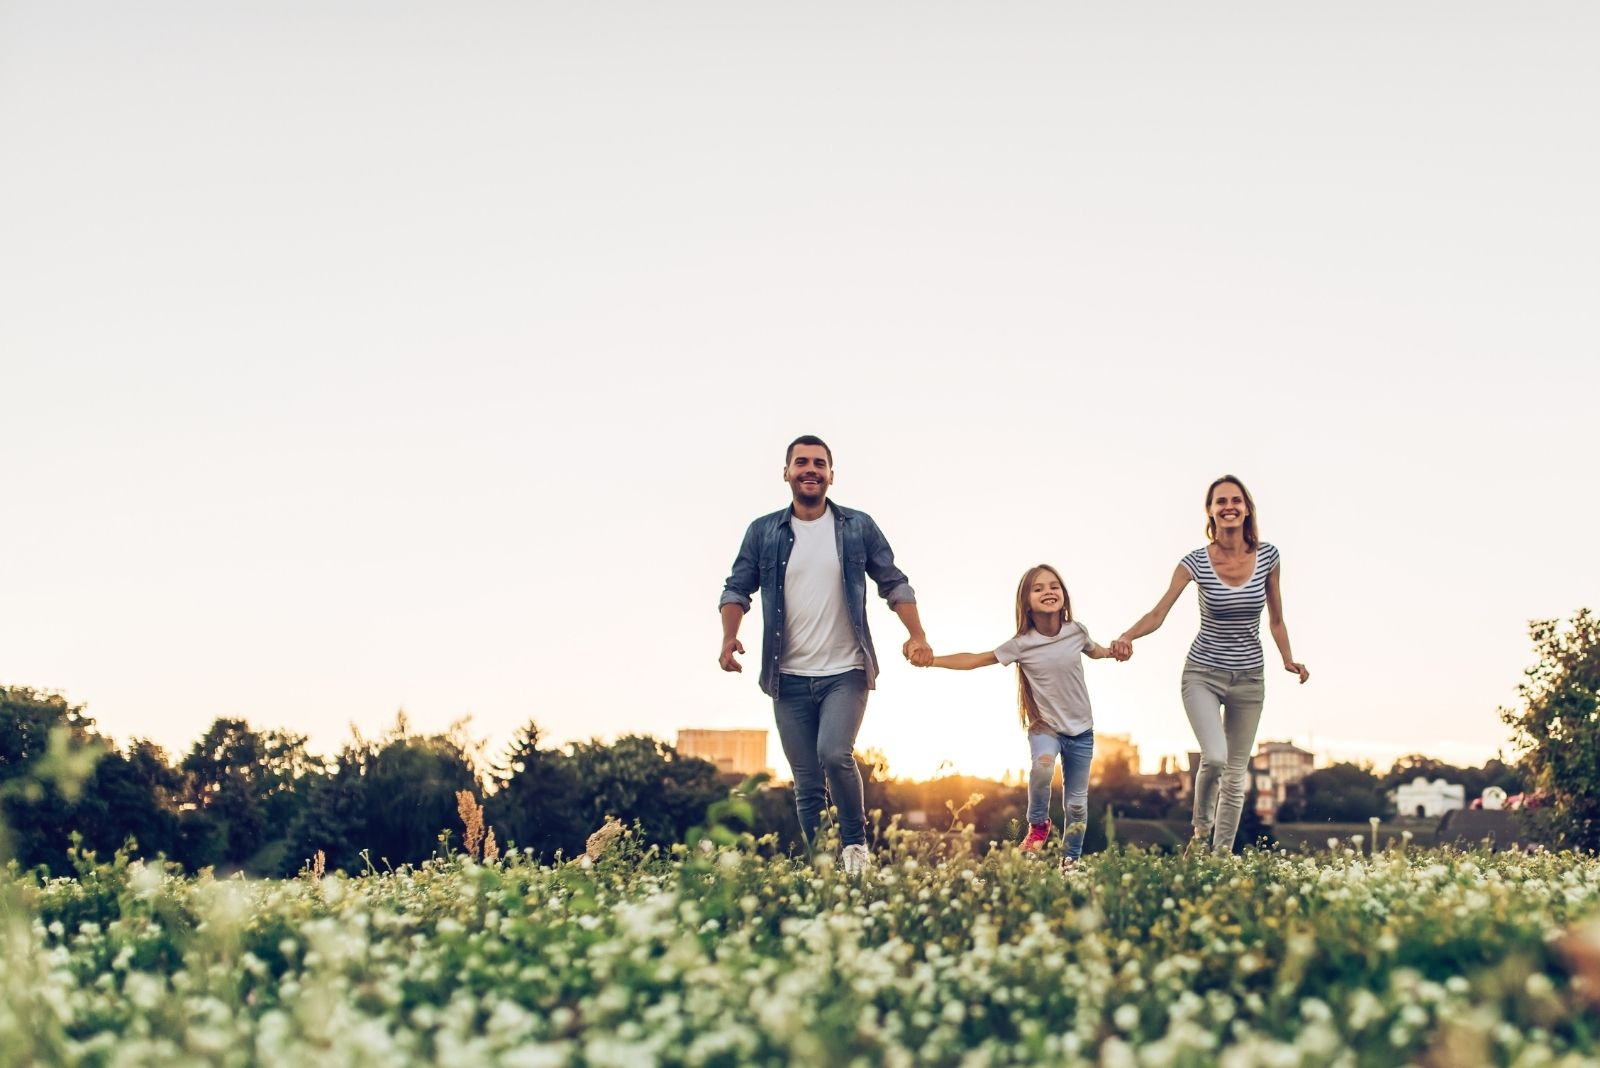 happy family outdoors spending time together in the field holding hands